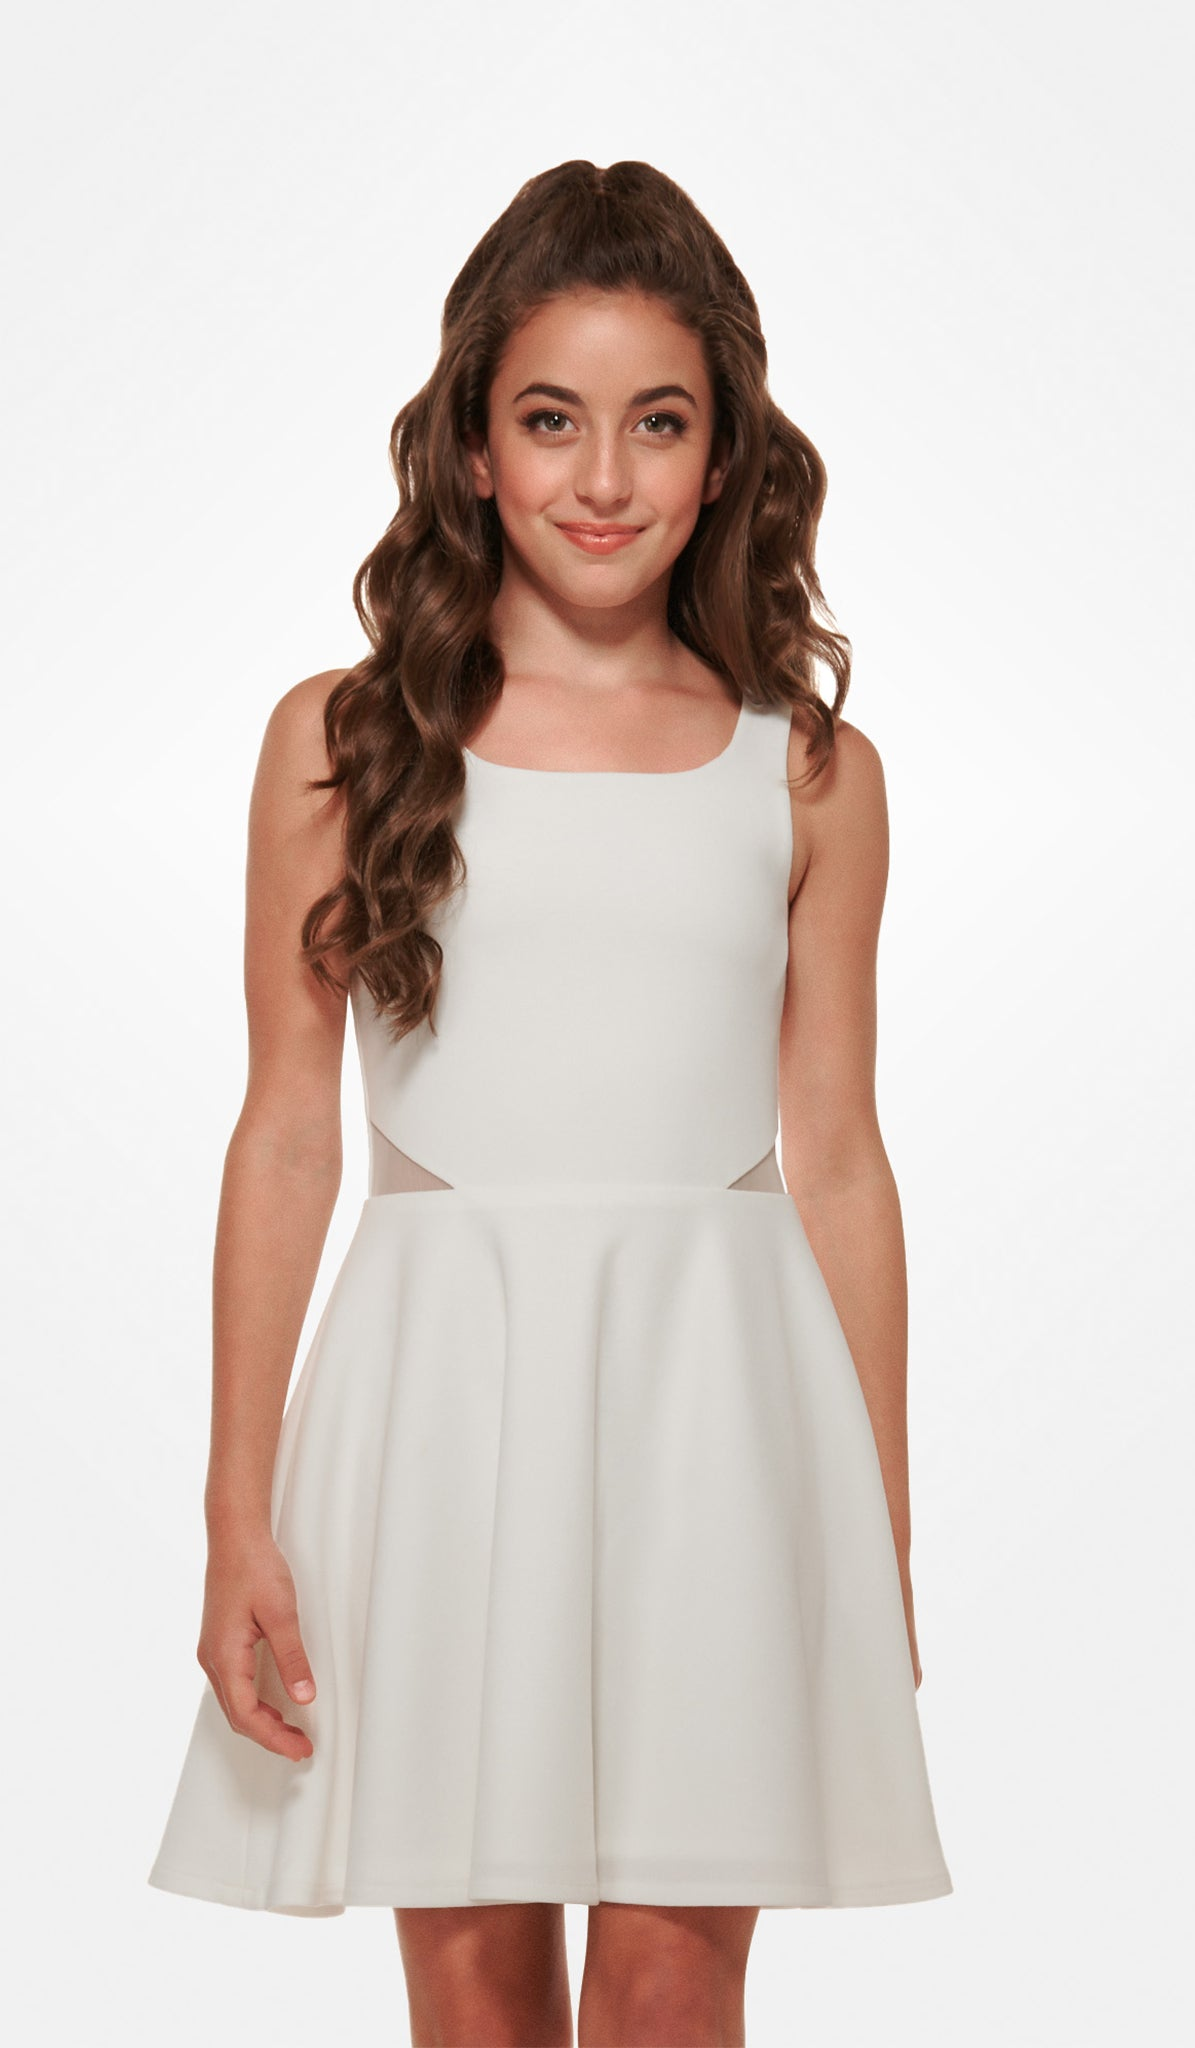 The Riley Dress - Ivory stretch crepe georgette dress with mesh illusion waist inserts